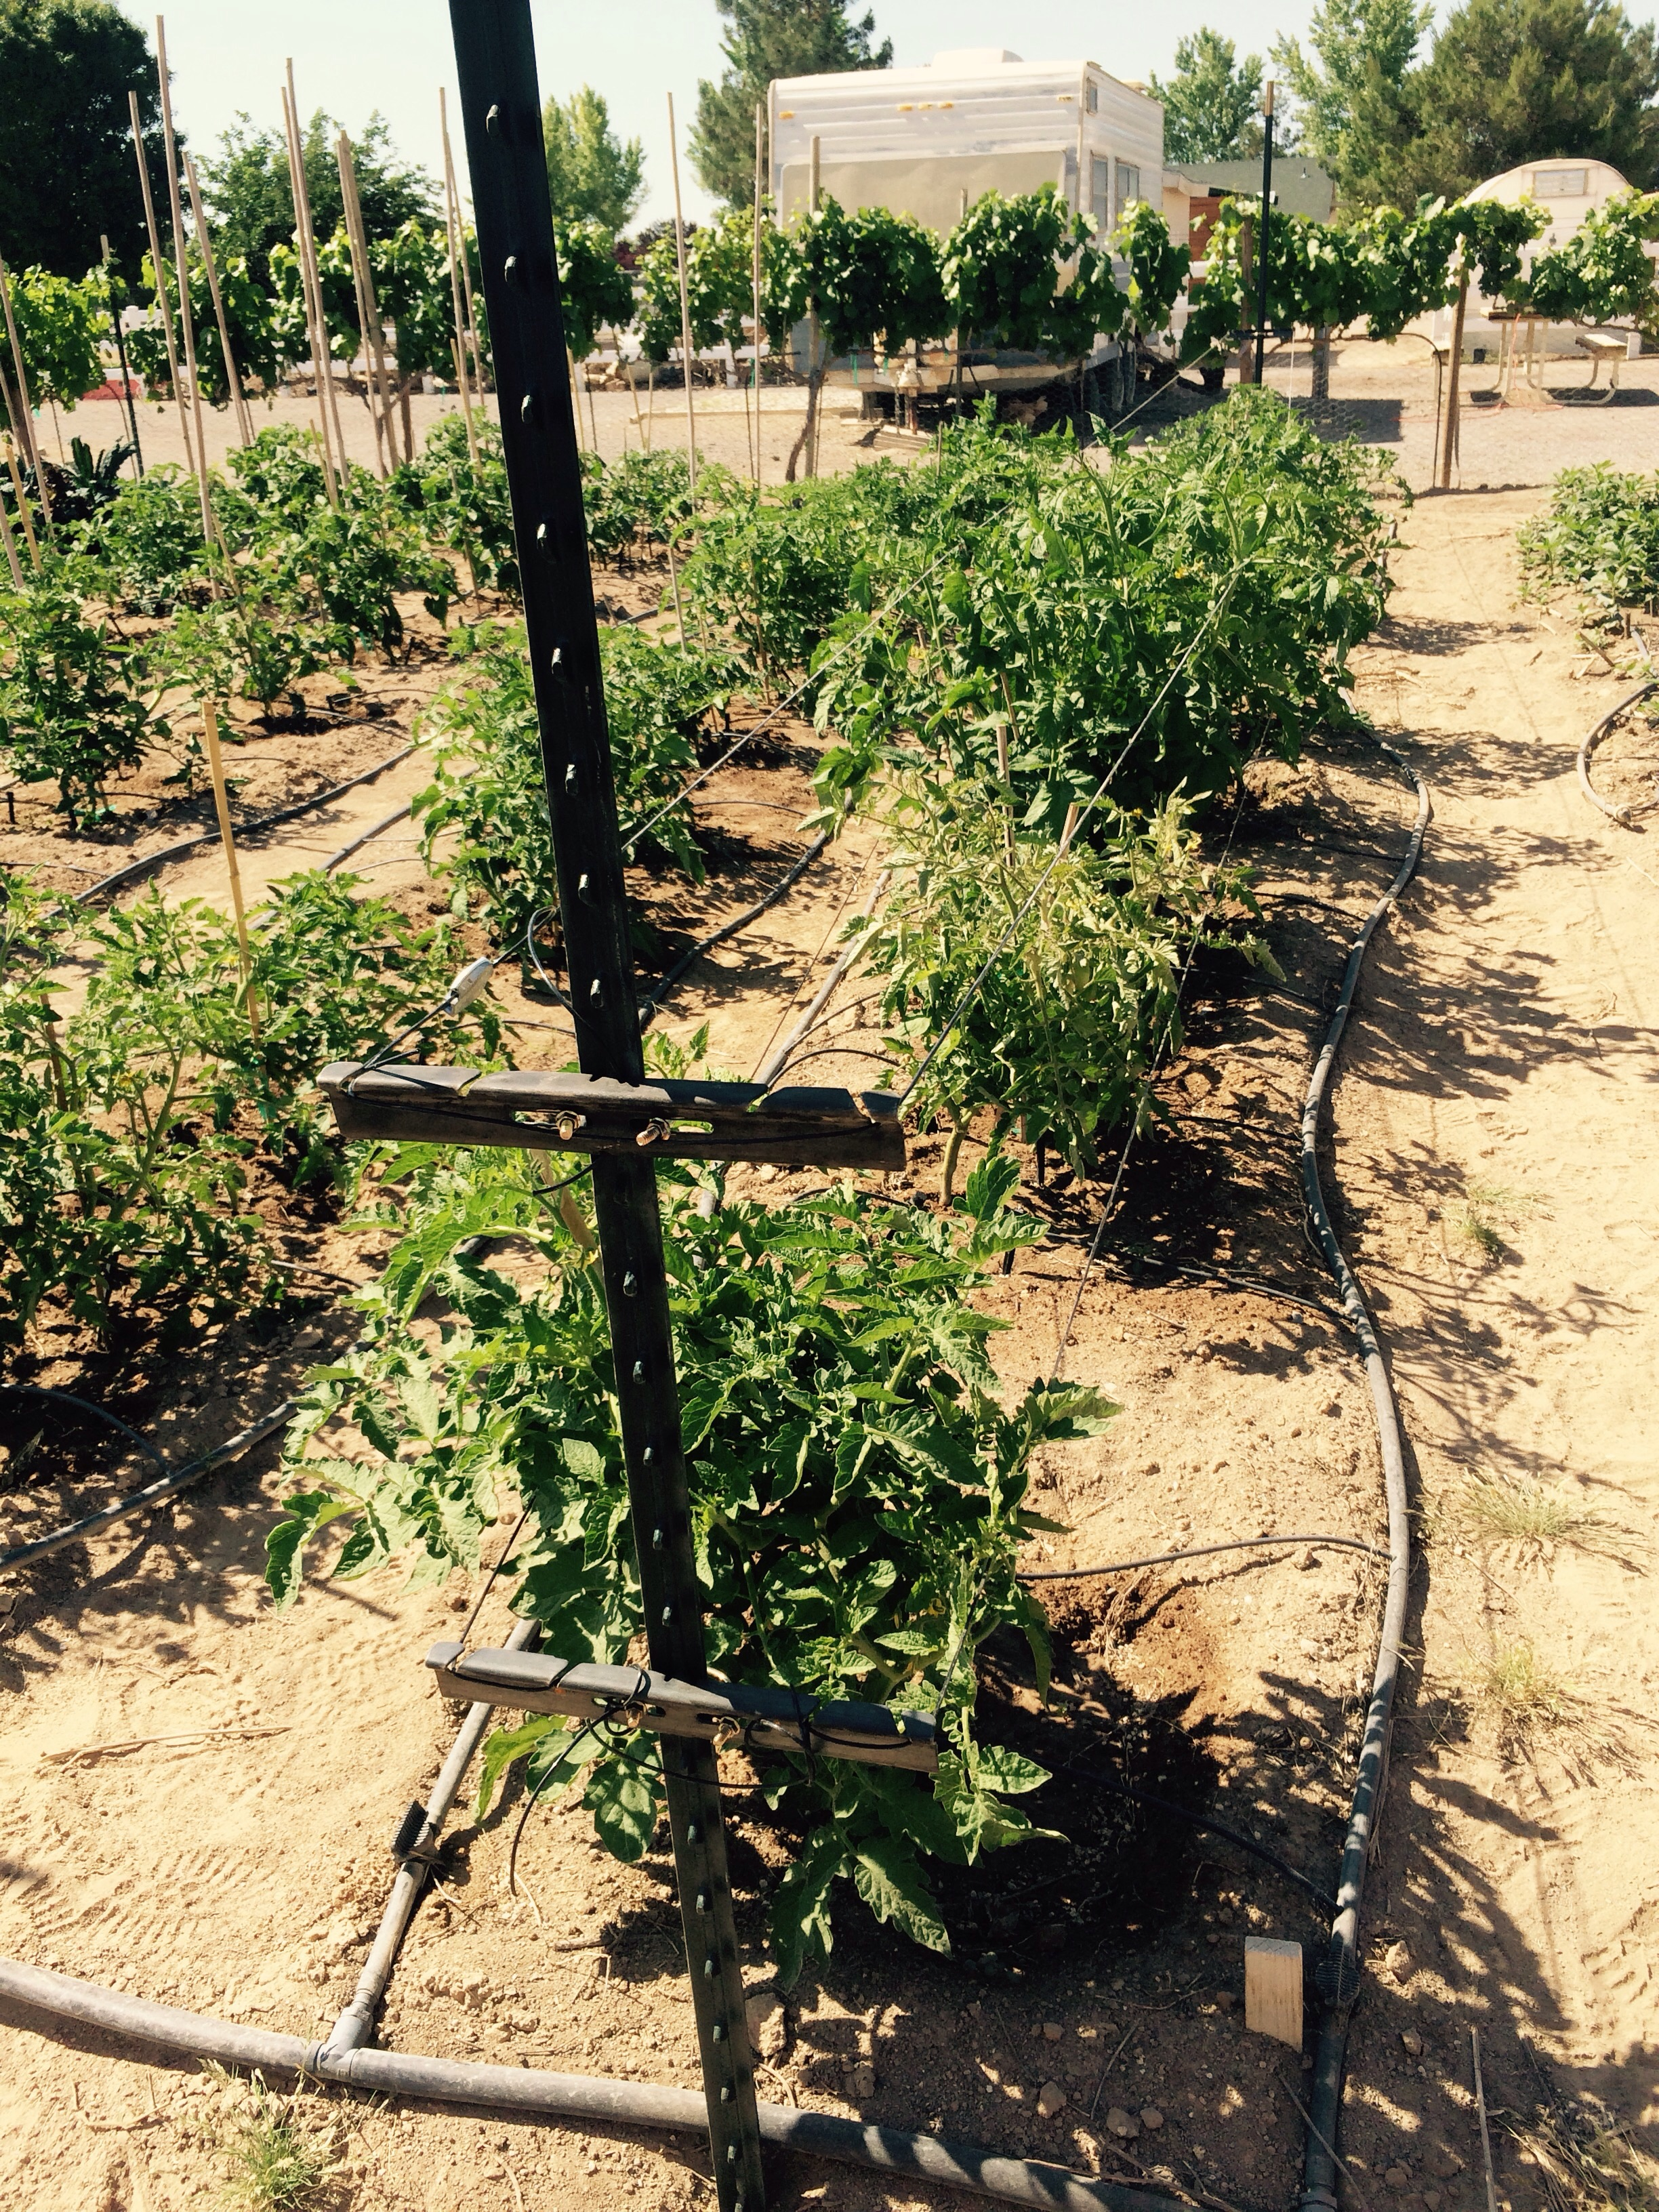 We are using our California spiral trellis system that we used successfully in our vineyards on our heirloom tomato gardens